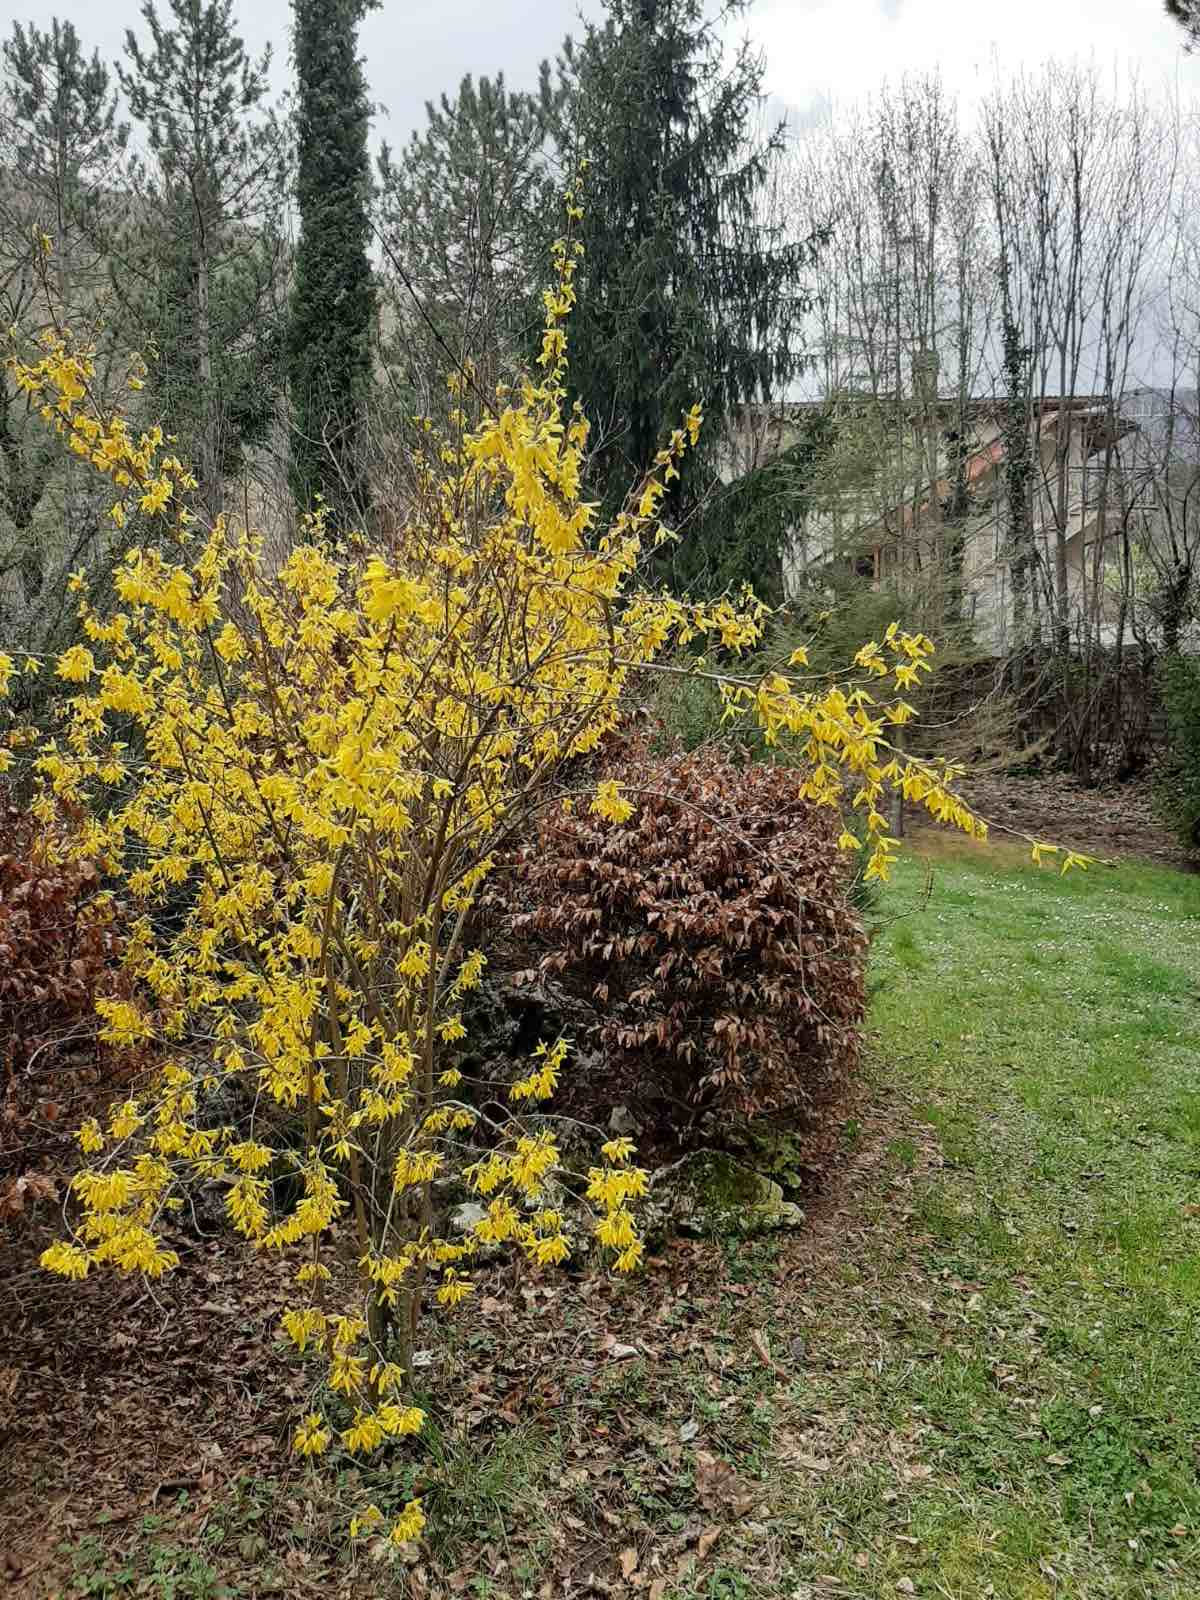 image of garden with forsythia in bloom, A-G Laura.